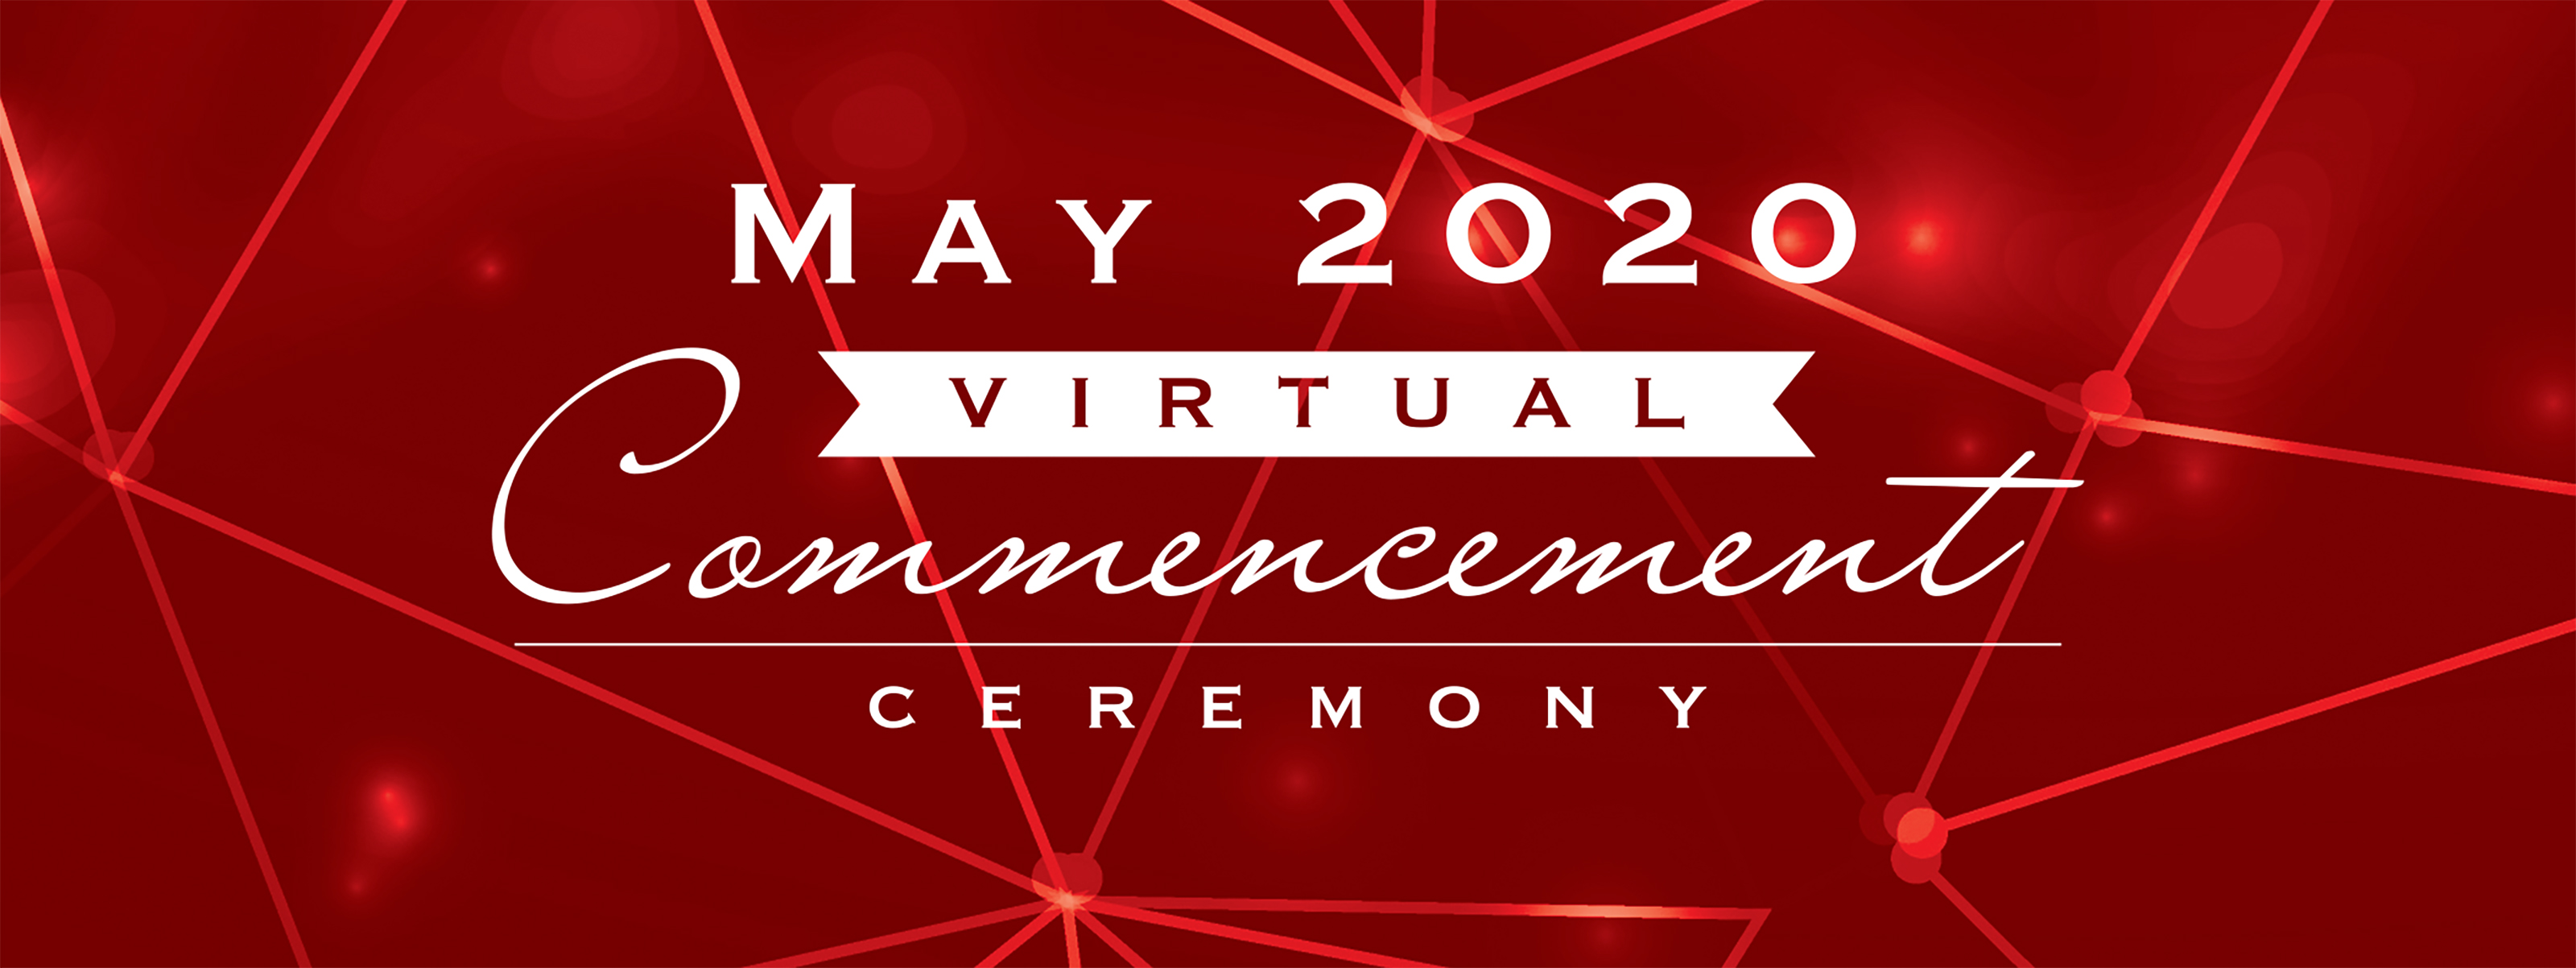 University holds historic Virtual Commencement